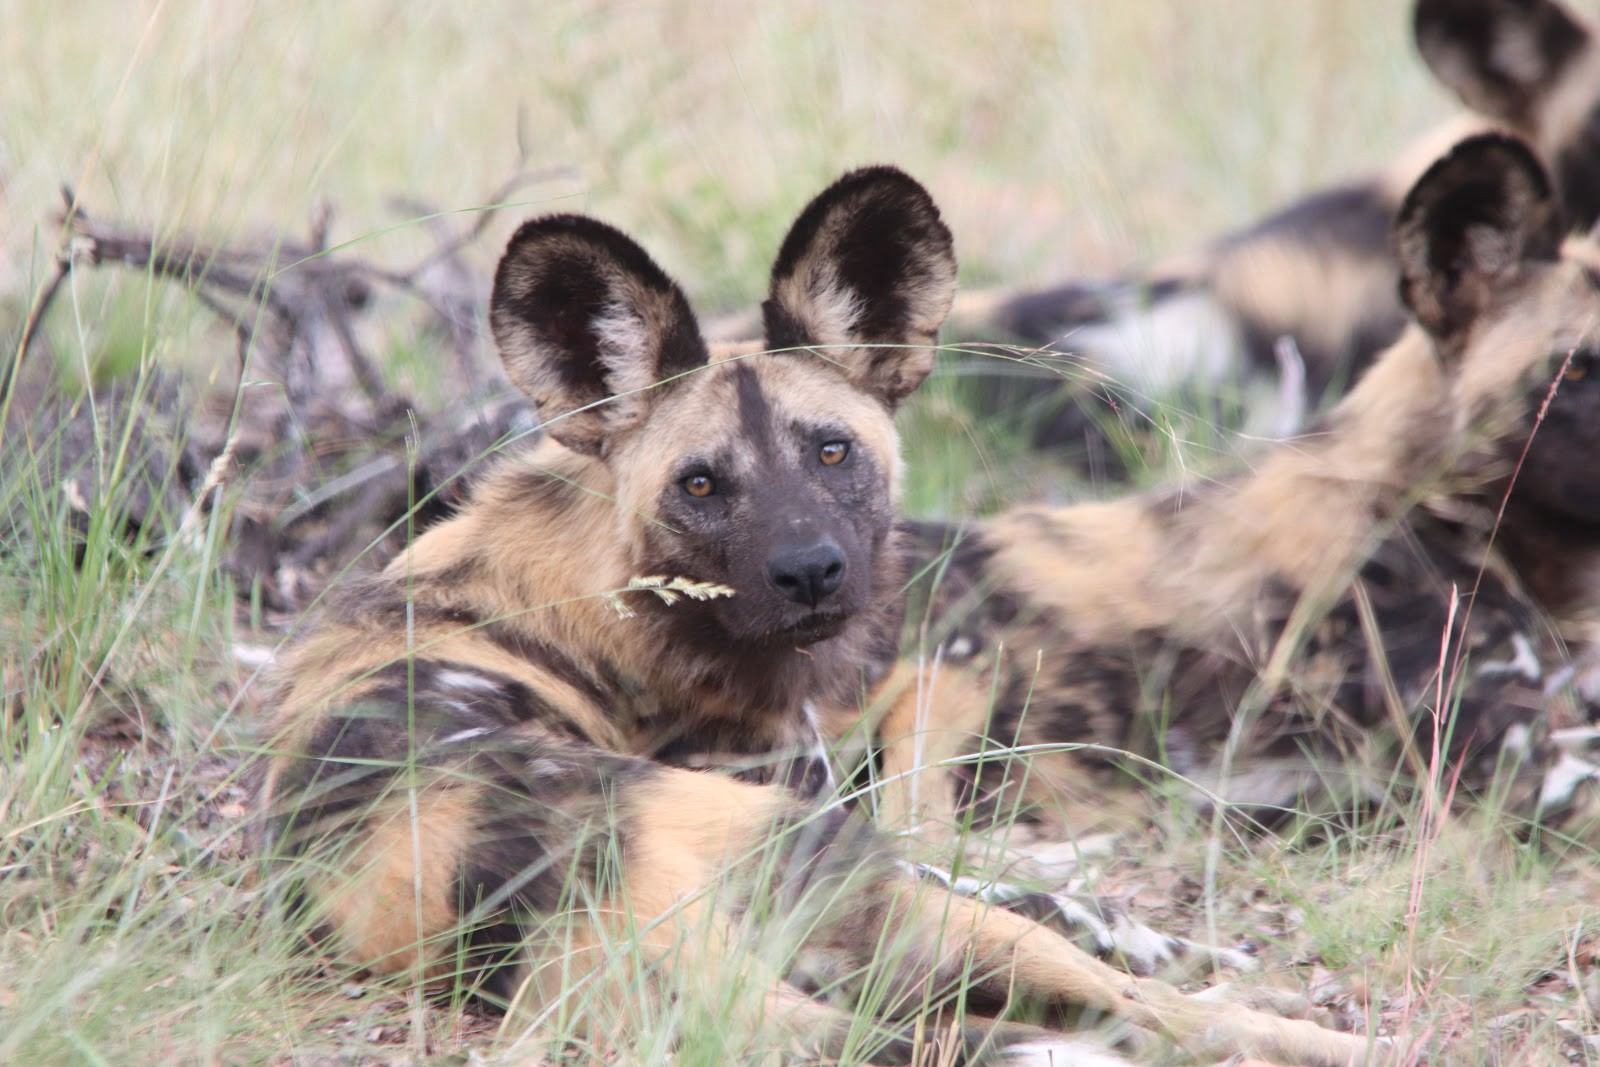 They go by many names 'painted dogs,' painted wolves,' 'hyena dogs,' 'African hunting dogs,' 'ornate wolves,' 'African wild dogs,' or more commonly just 'wild dogs.' These are the largest canines native to Africa and are more closely related to wolves than domesticated dogs. There has been a big push to rebrand them as 'painted wolves,' to increase their status and distinguish them from wild feral dogs. Photo by Derek Van Der Merwe.